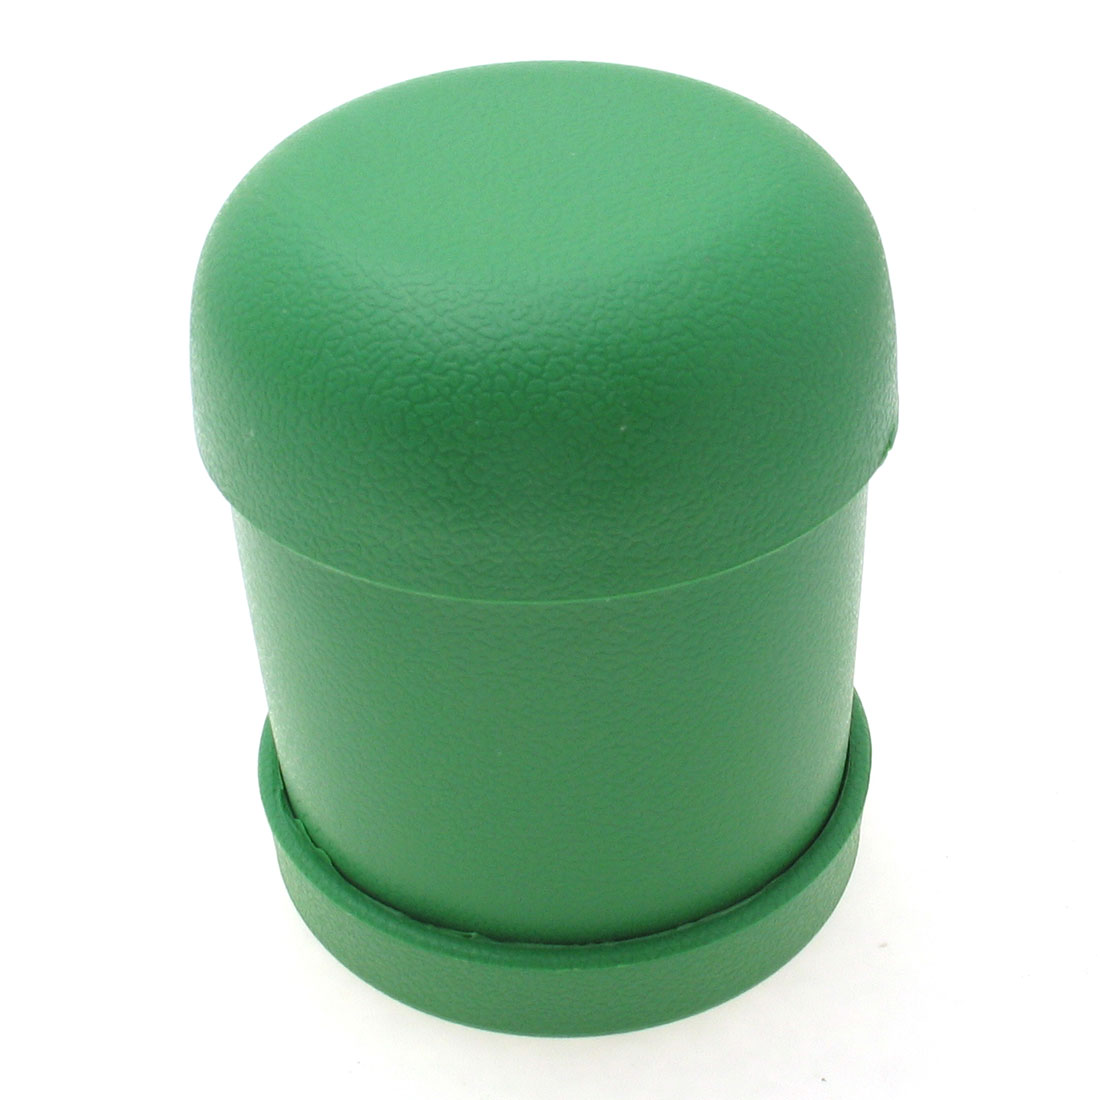 Deluxe Dice Cup - Green